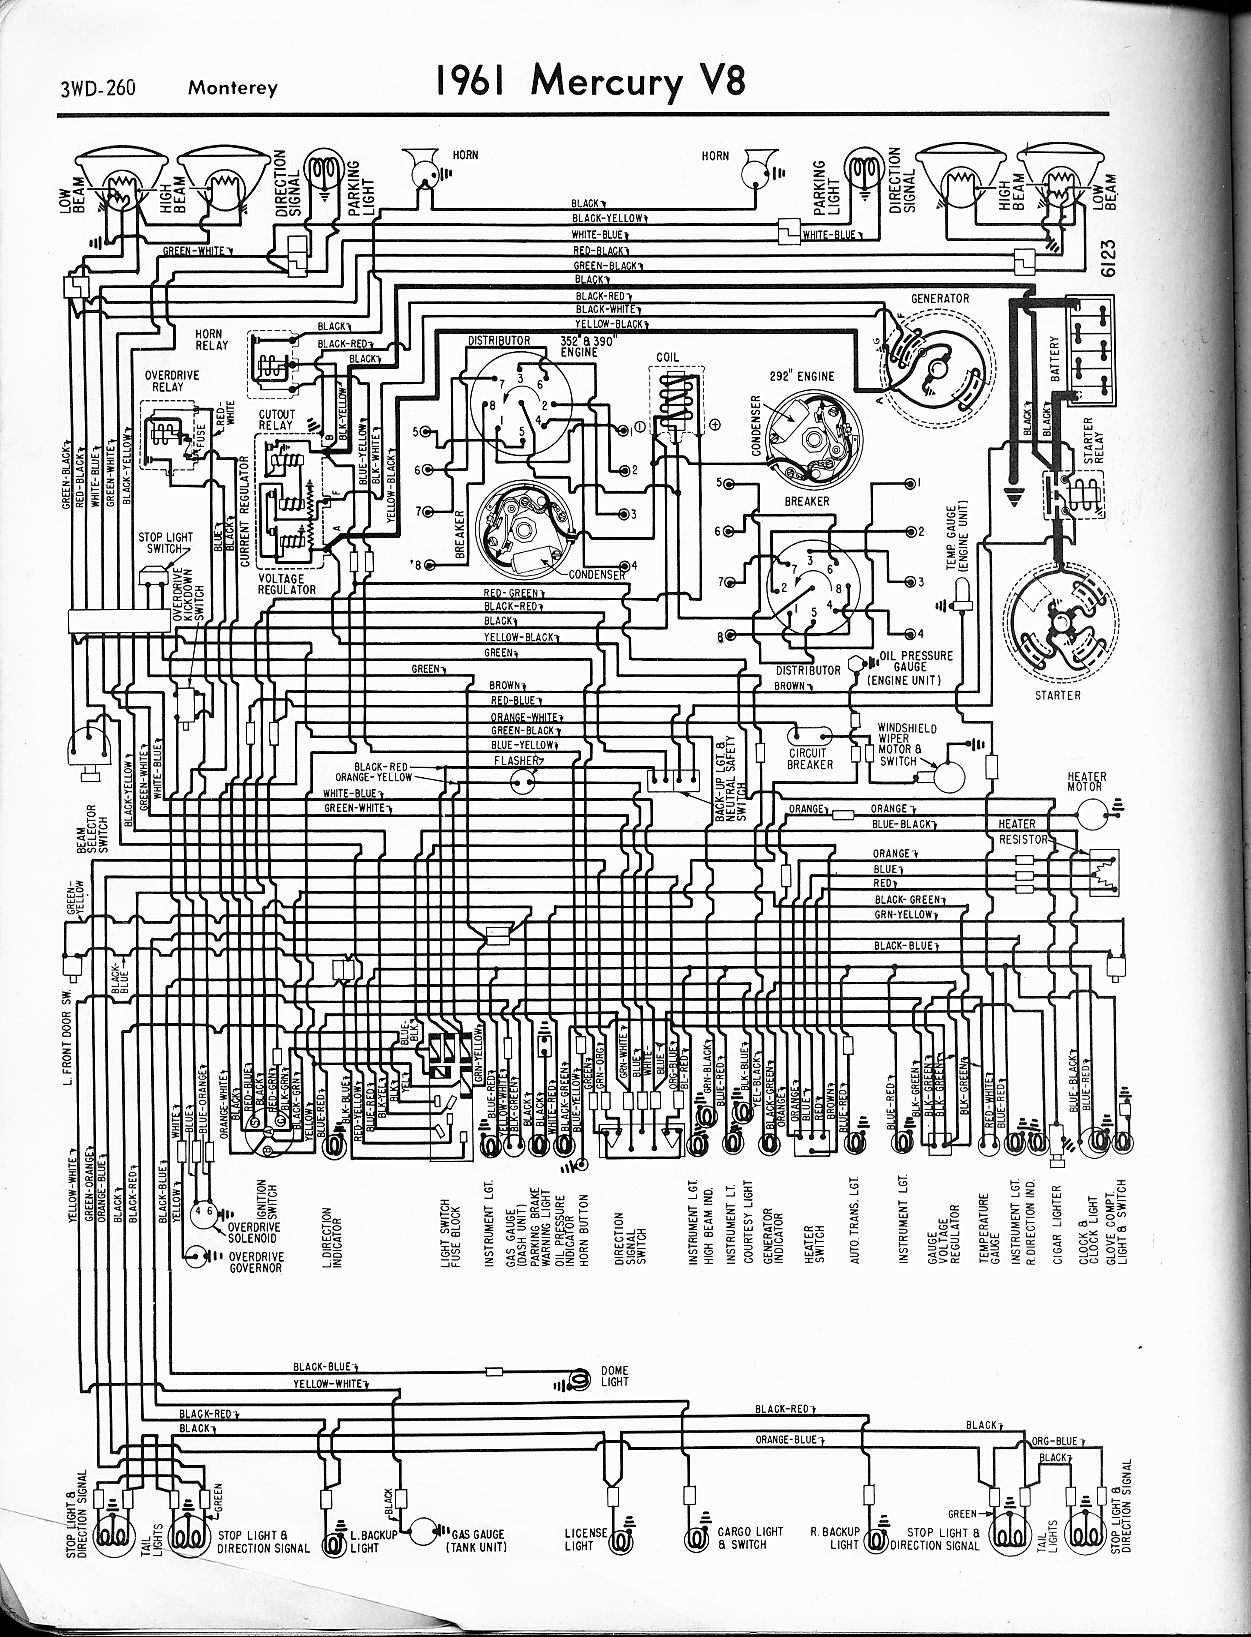 MWire5765 260 mercury wiring diagrams the old car manual project 2004 mercury monterey fuse box diagram at n-0.co